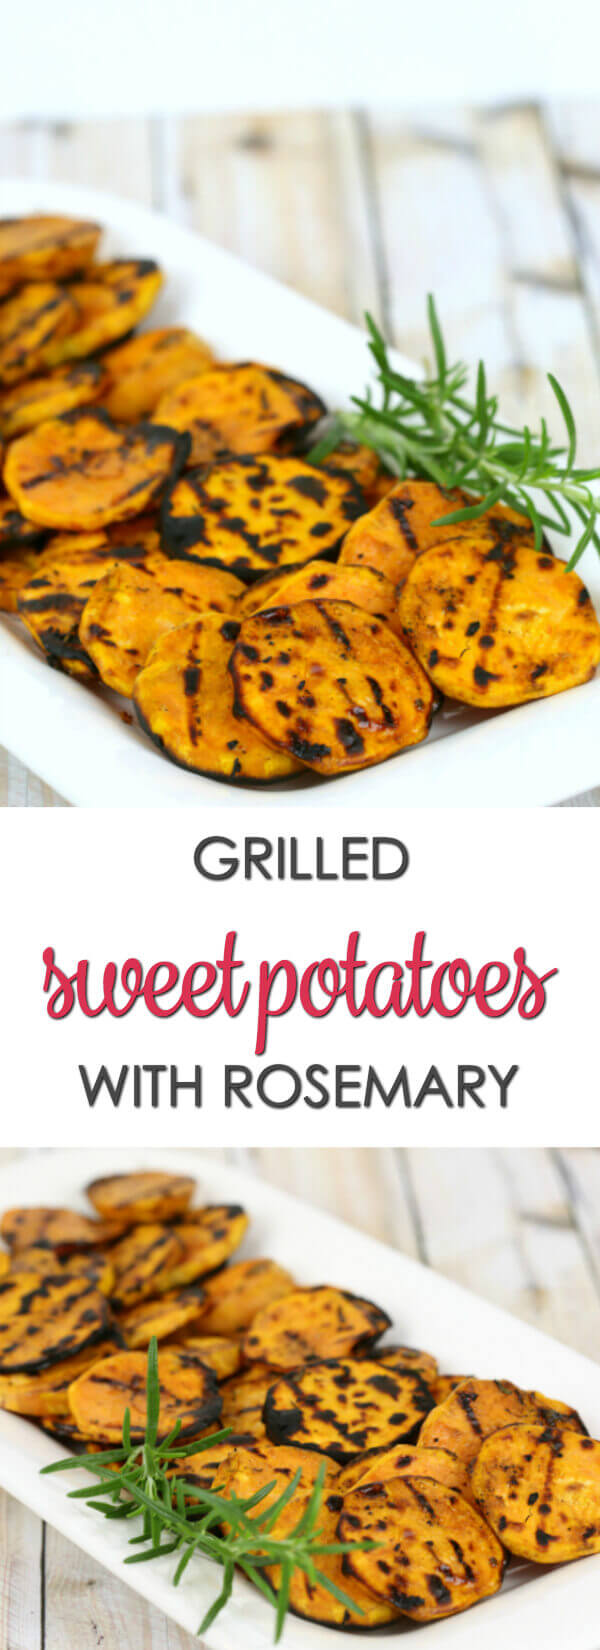 Grilled Sweet Potatoes - this is one of my favorite easy grilled vegetable recipes